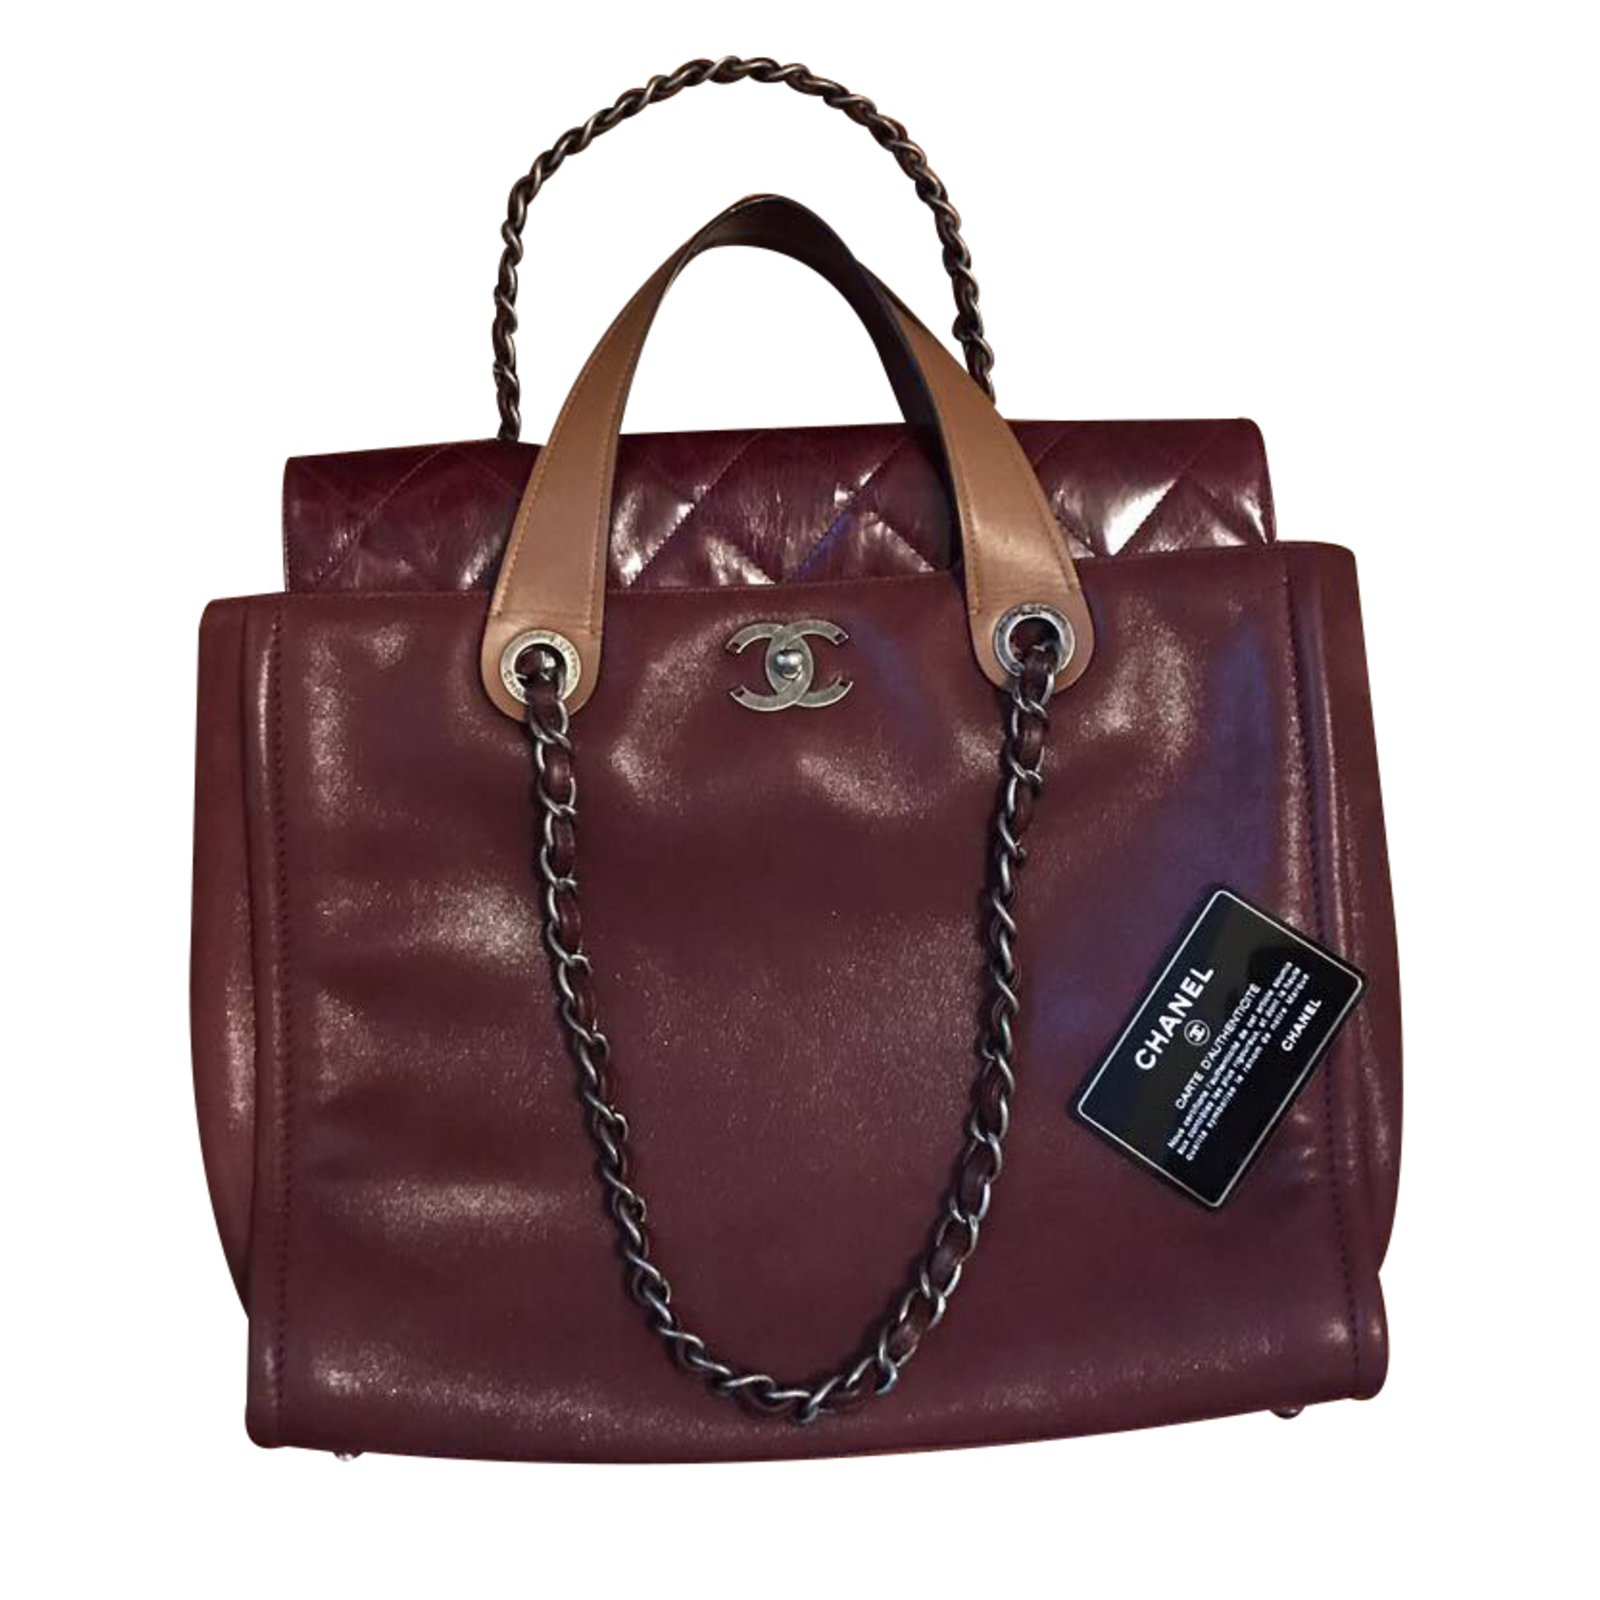 75ceddfbf0 Burgundy Handbags – Fashion dresses